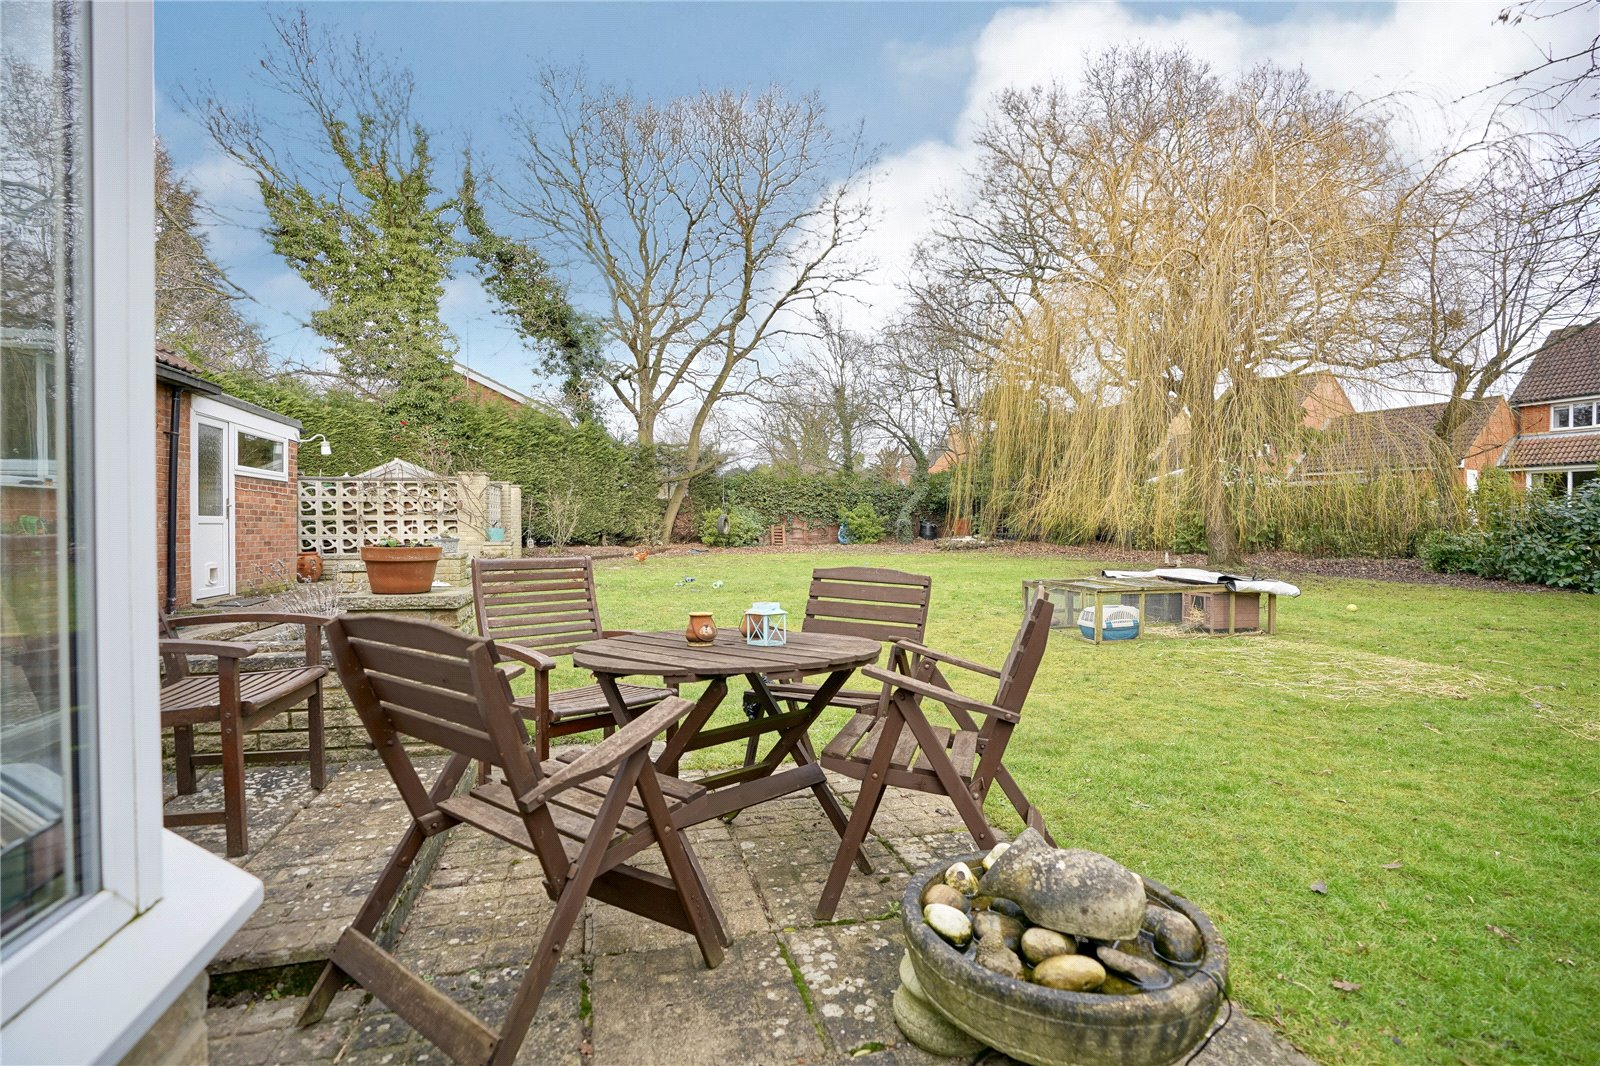 3 bed house for sale in Hemingford Grey, PE28 9BS  - Property Image 13